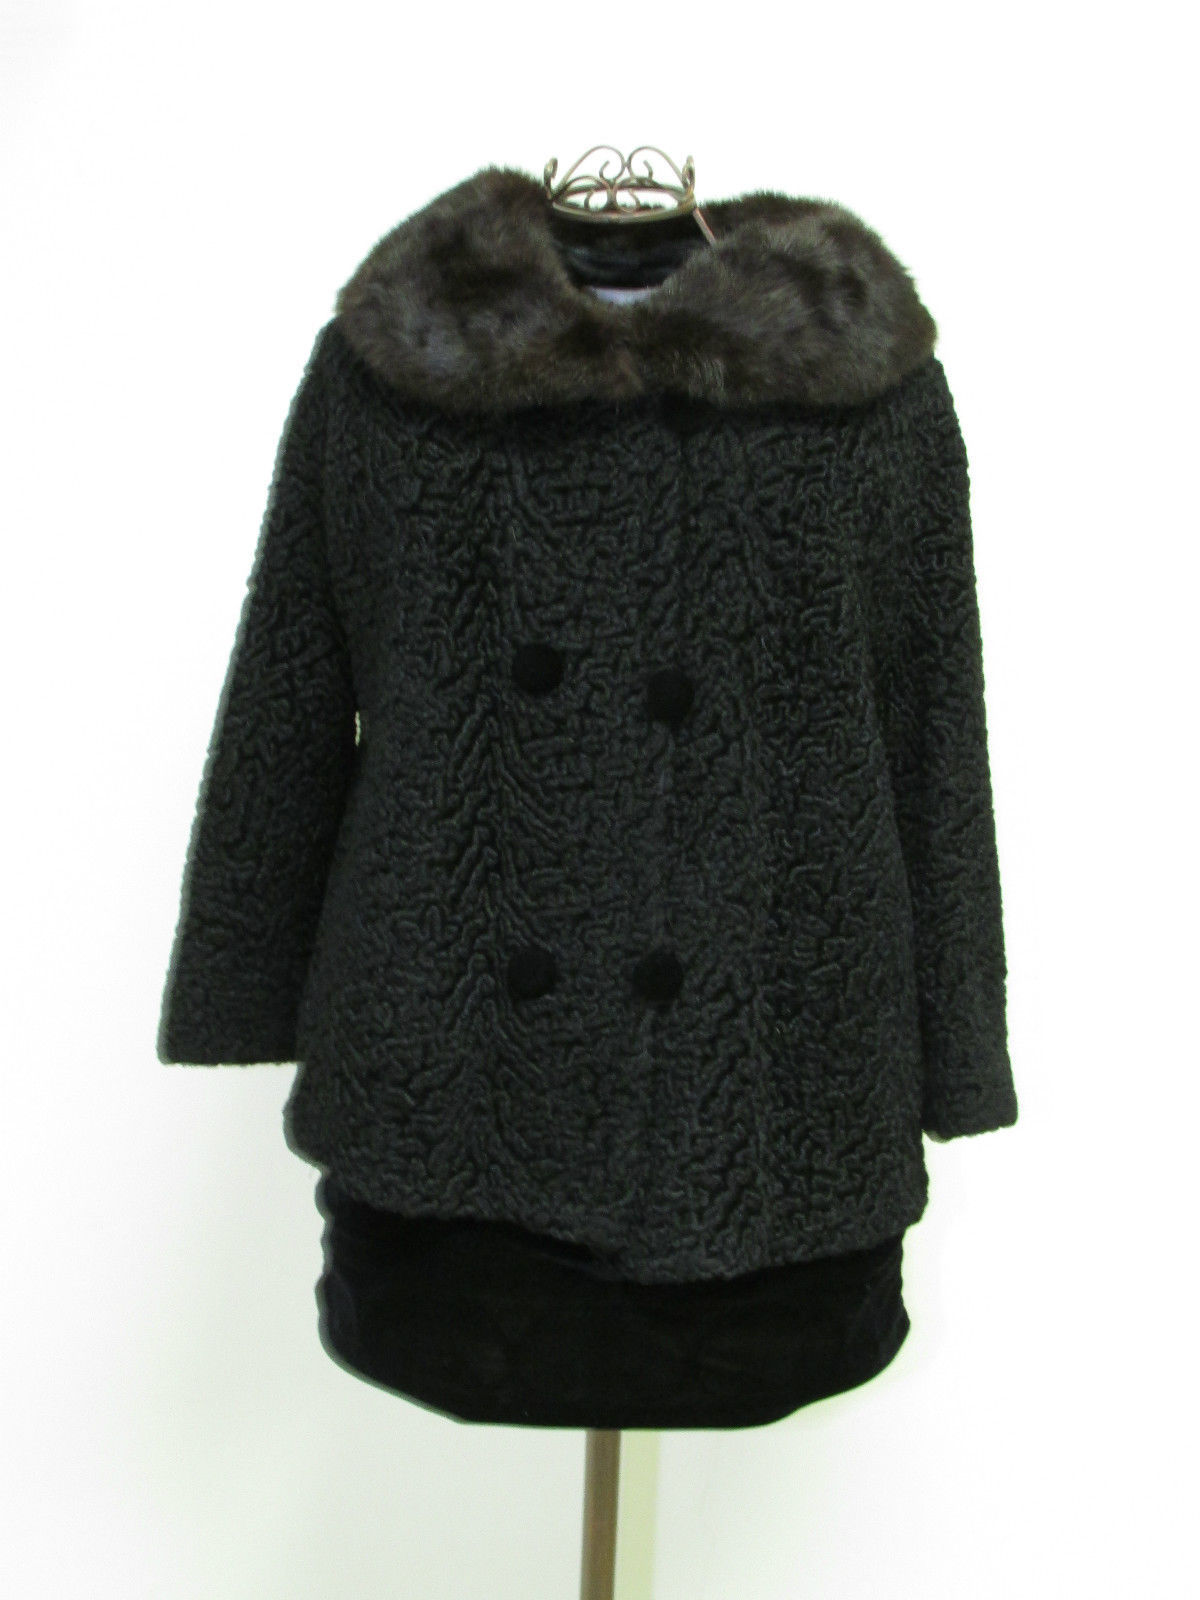 Vintage Black Persian Lamb Bolero Style Jacket With Rabbit Fur Collar